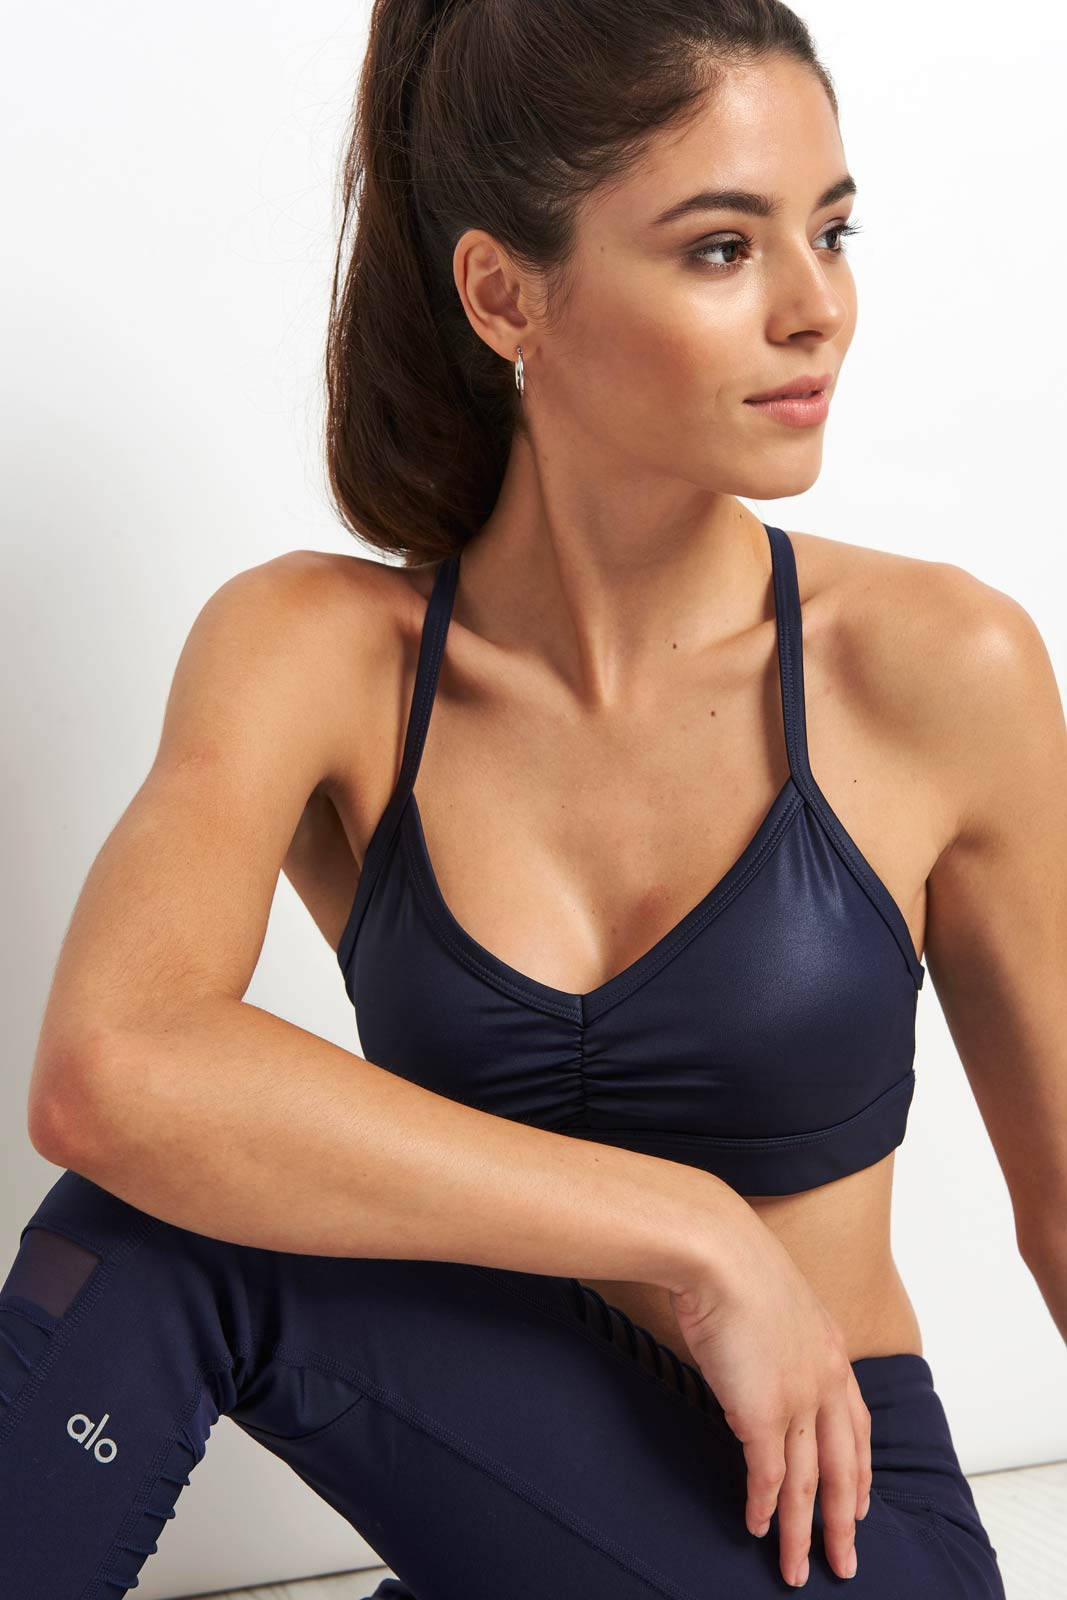 Alo Yoga Sunny Strappy Bra - Navy Glossy image 3 - The Sports Edit